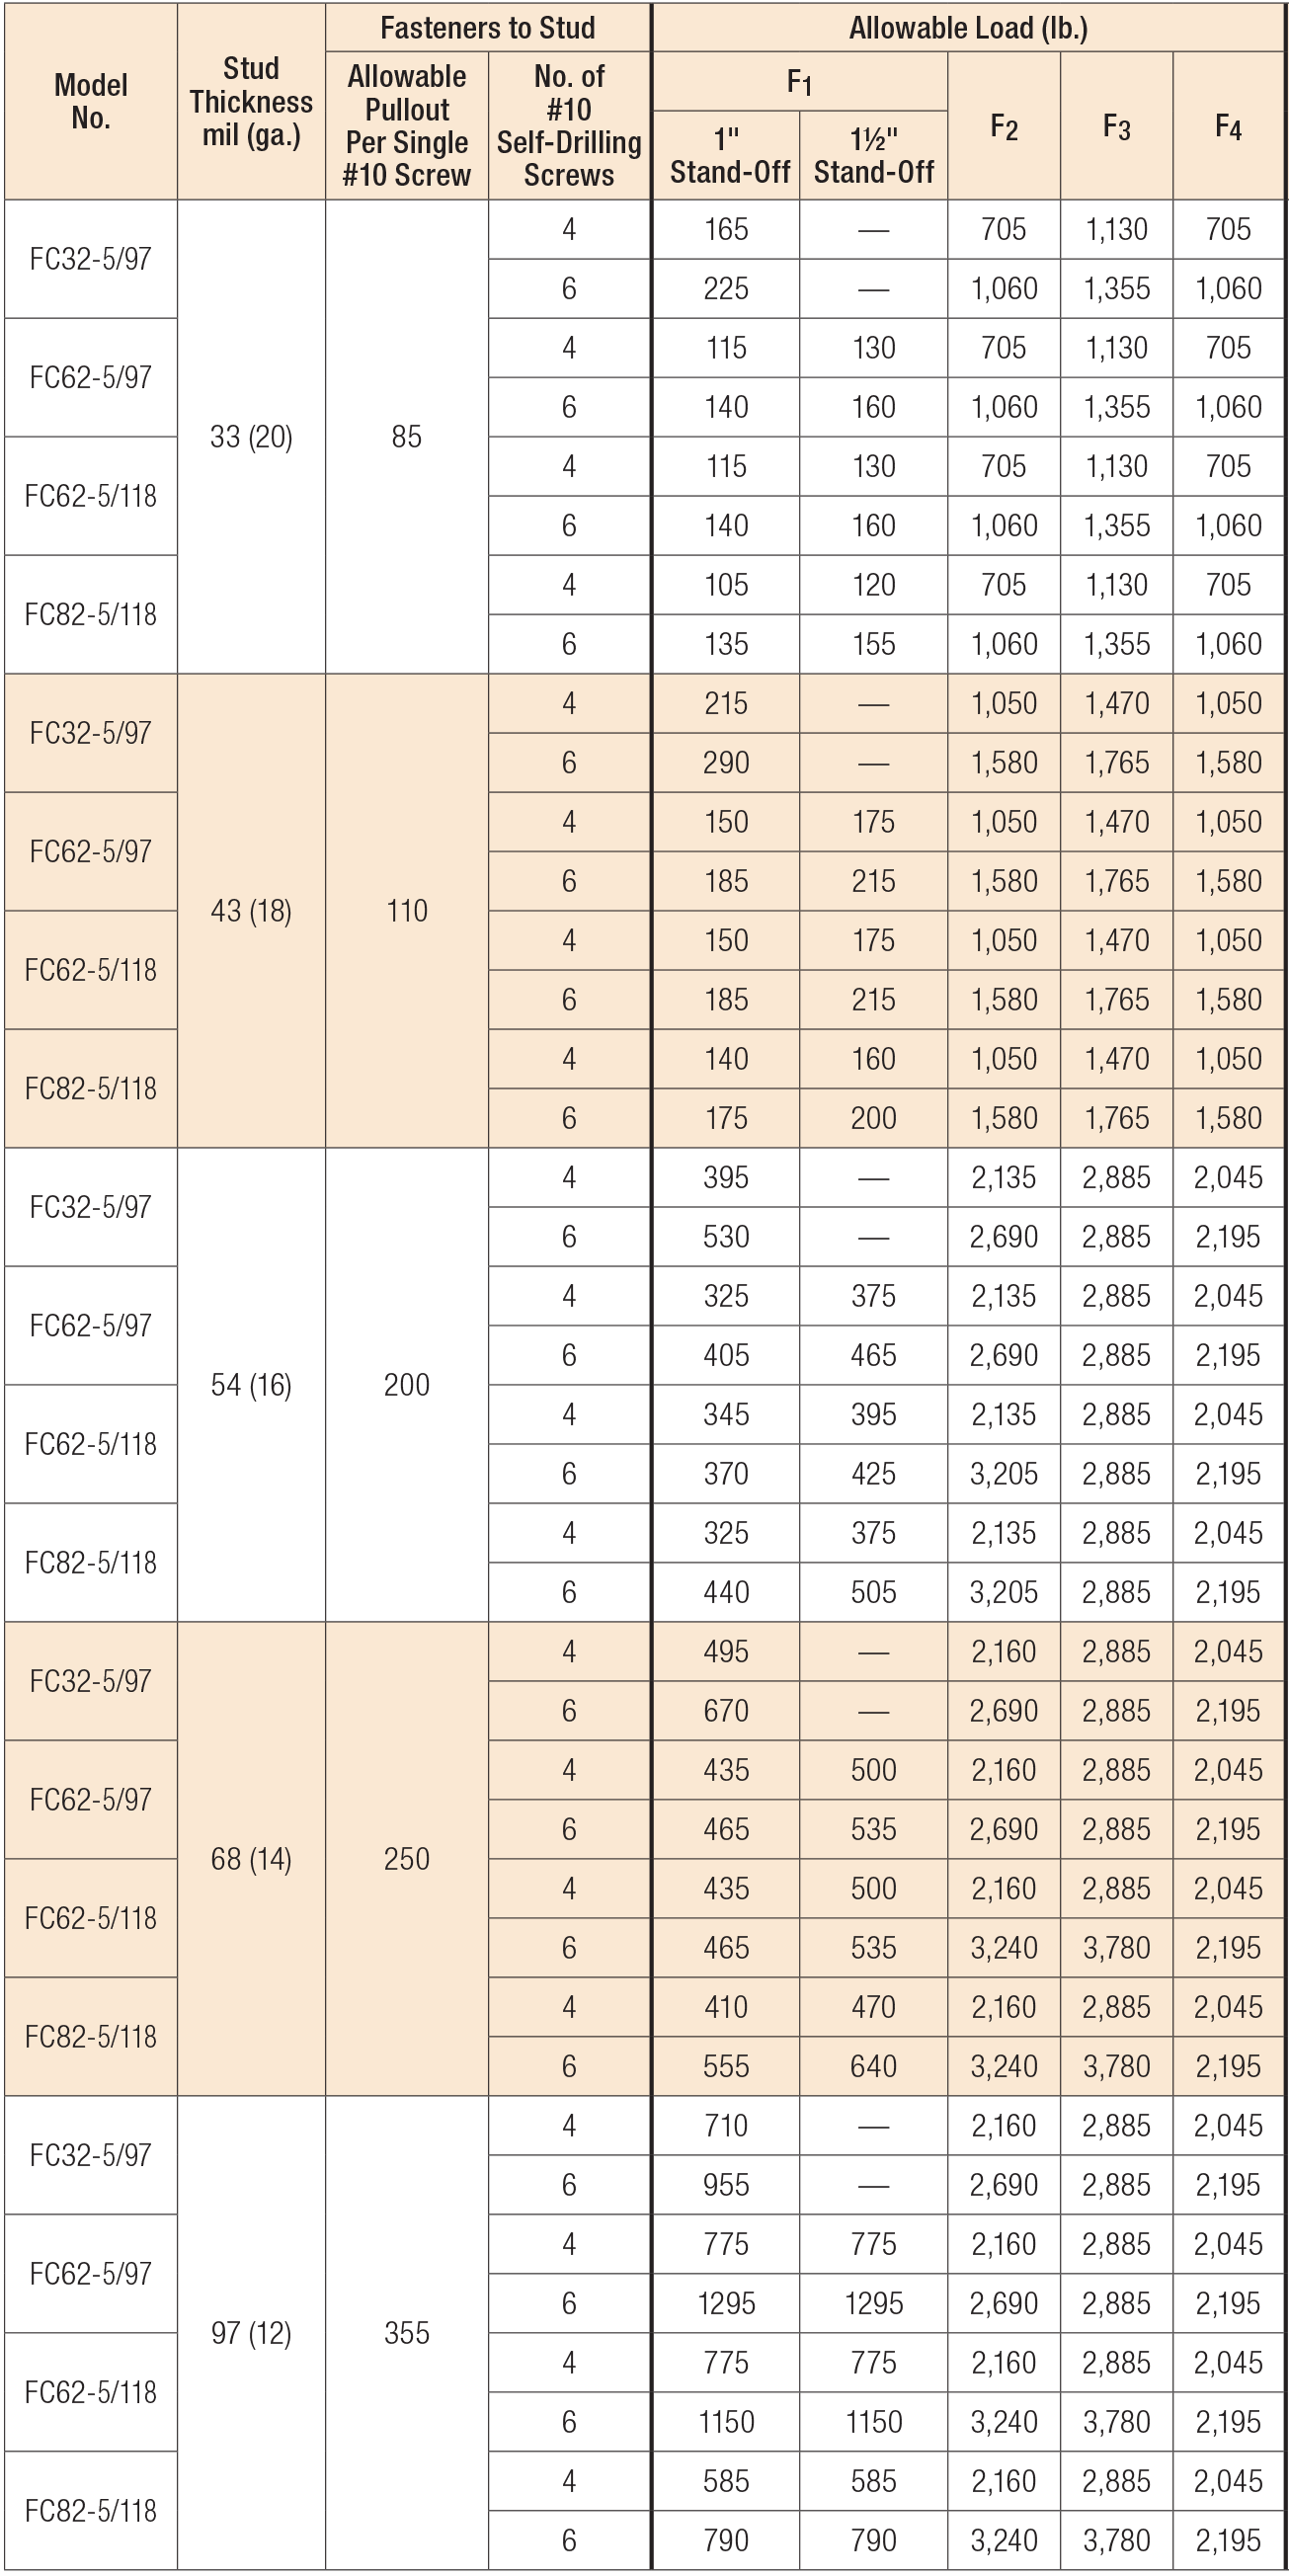 Load Table - FC Allowable Connector Loads